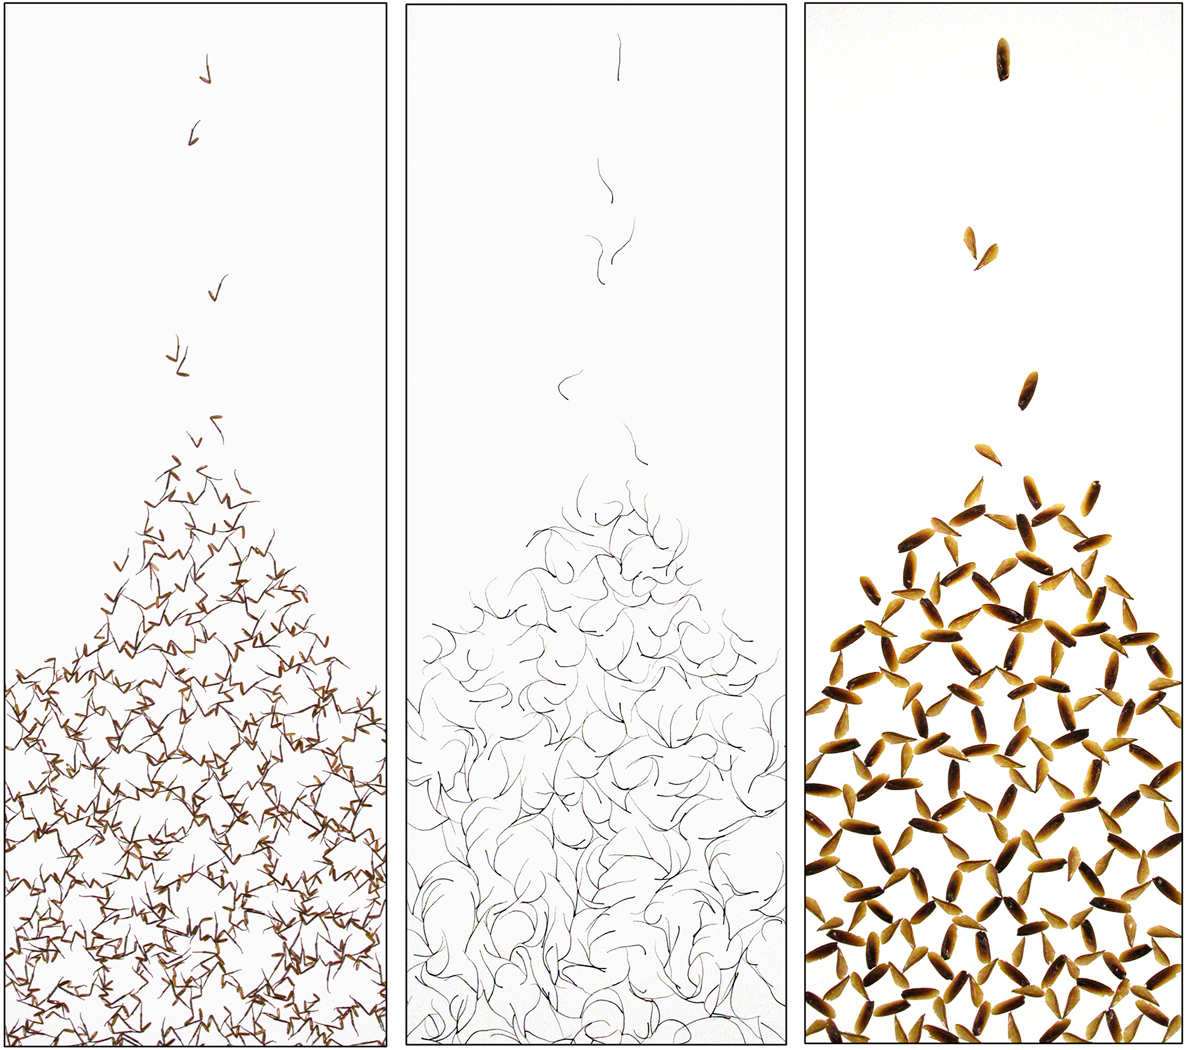 """PIT DRAWINGS, Cockroach legs, antennae, wings on paper, 30""""x11"""" each panel"""